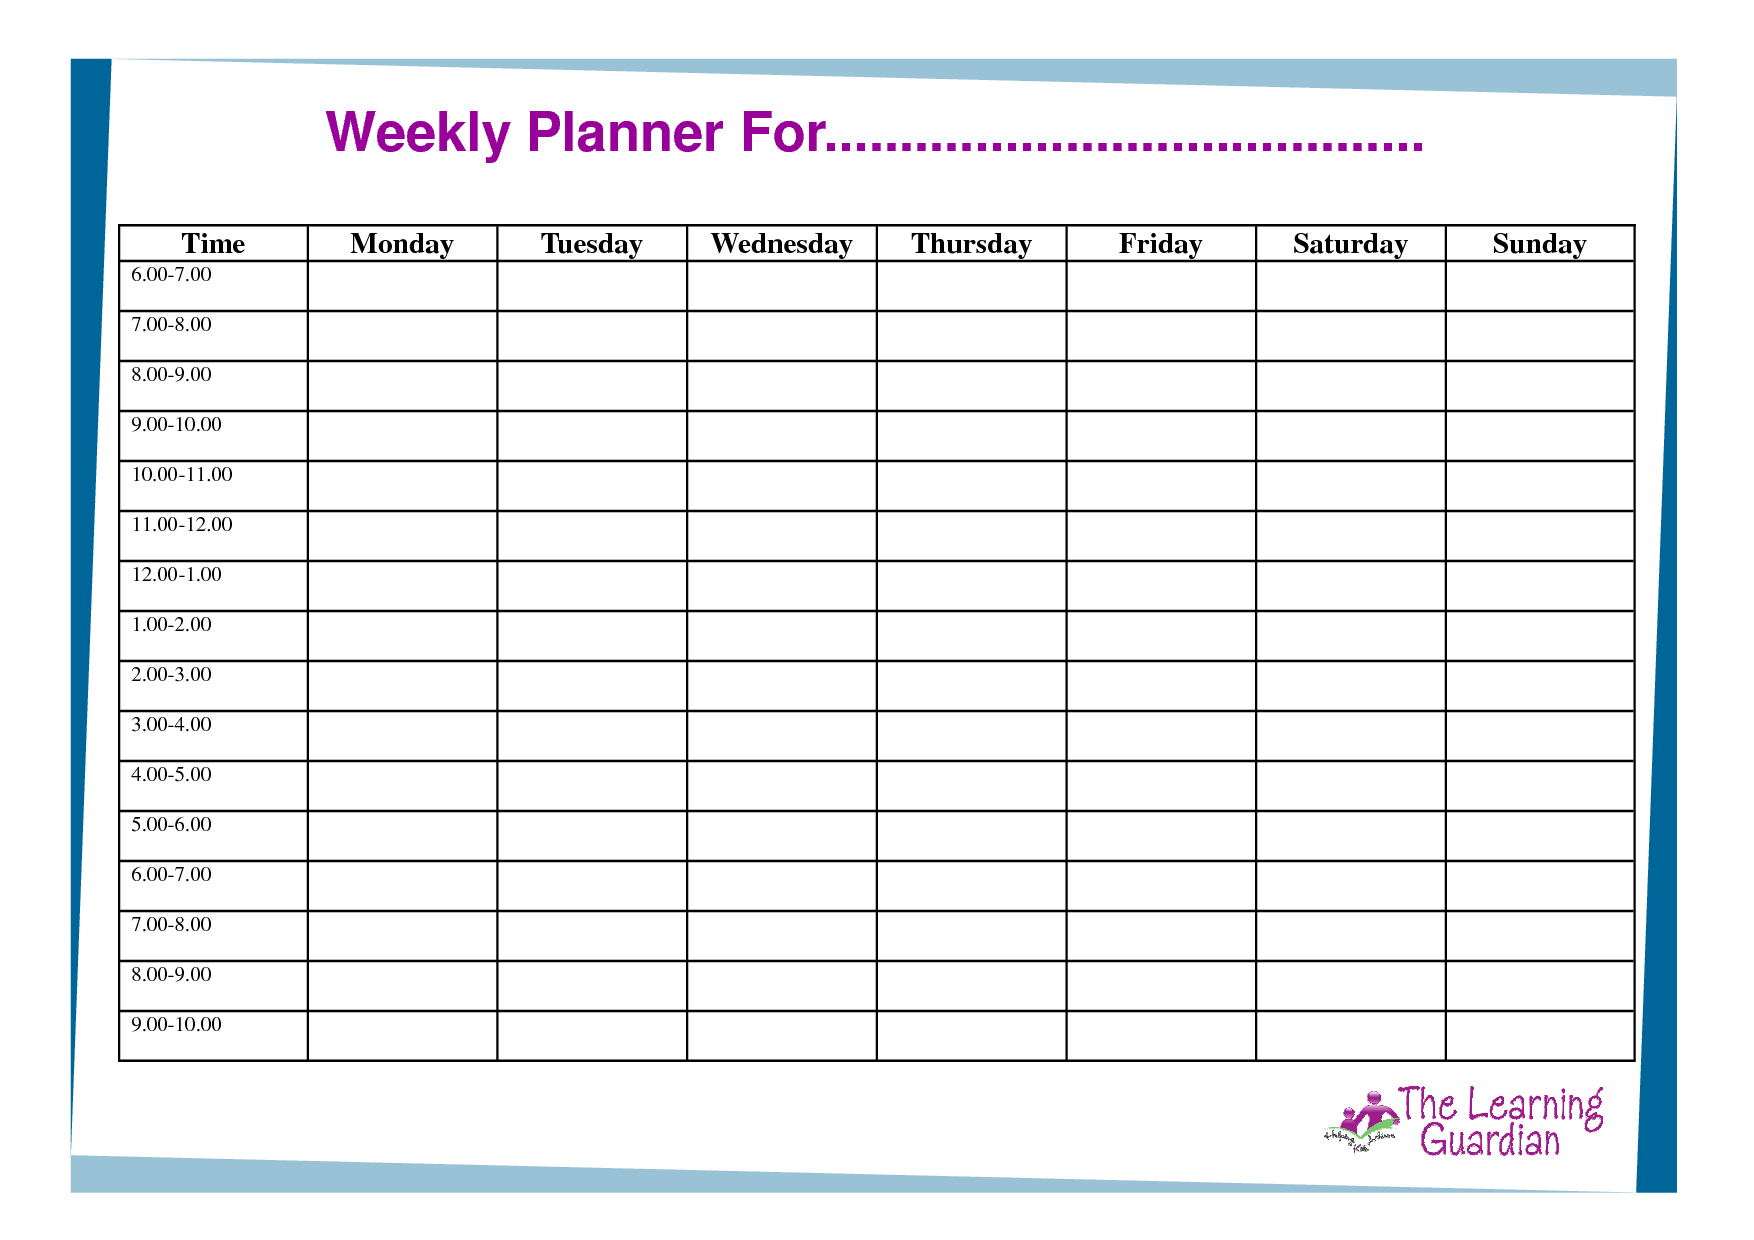 Free Printable Weekly Calendar Templates | Weekly Planner For Time with regard to Calendar Template Monday To Sunday